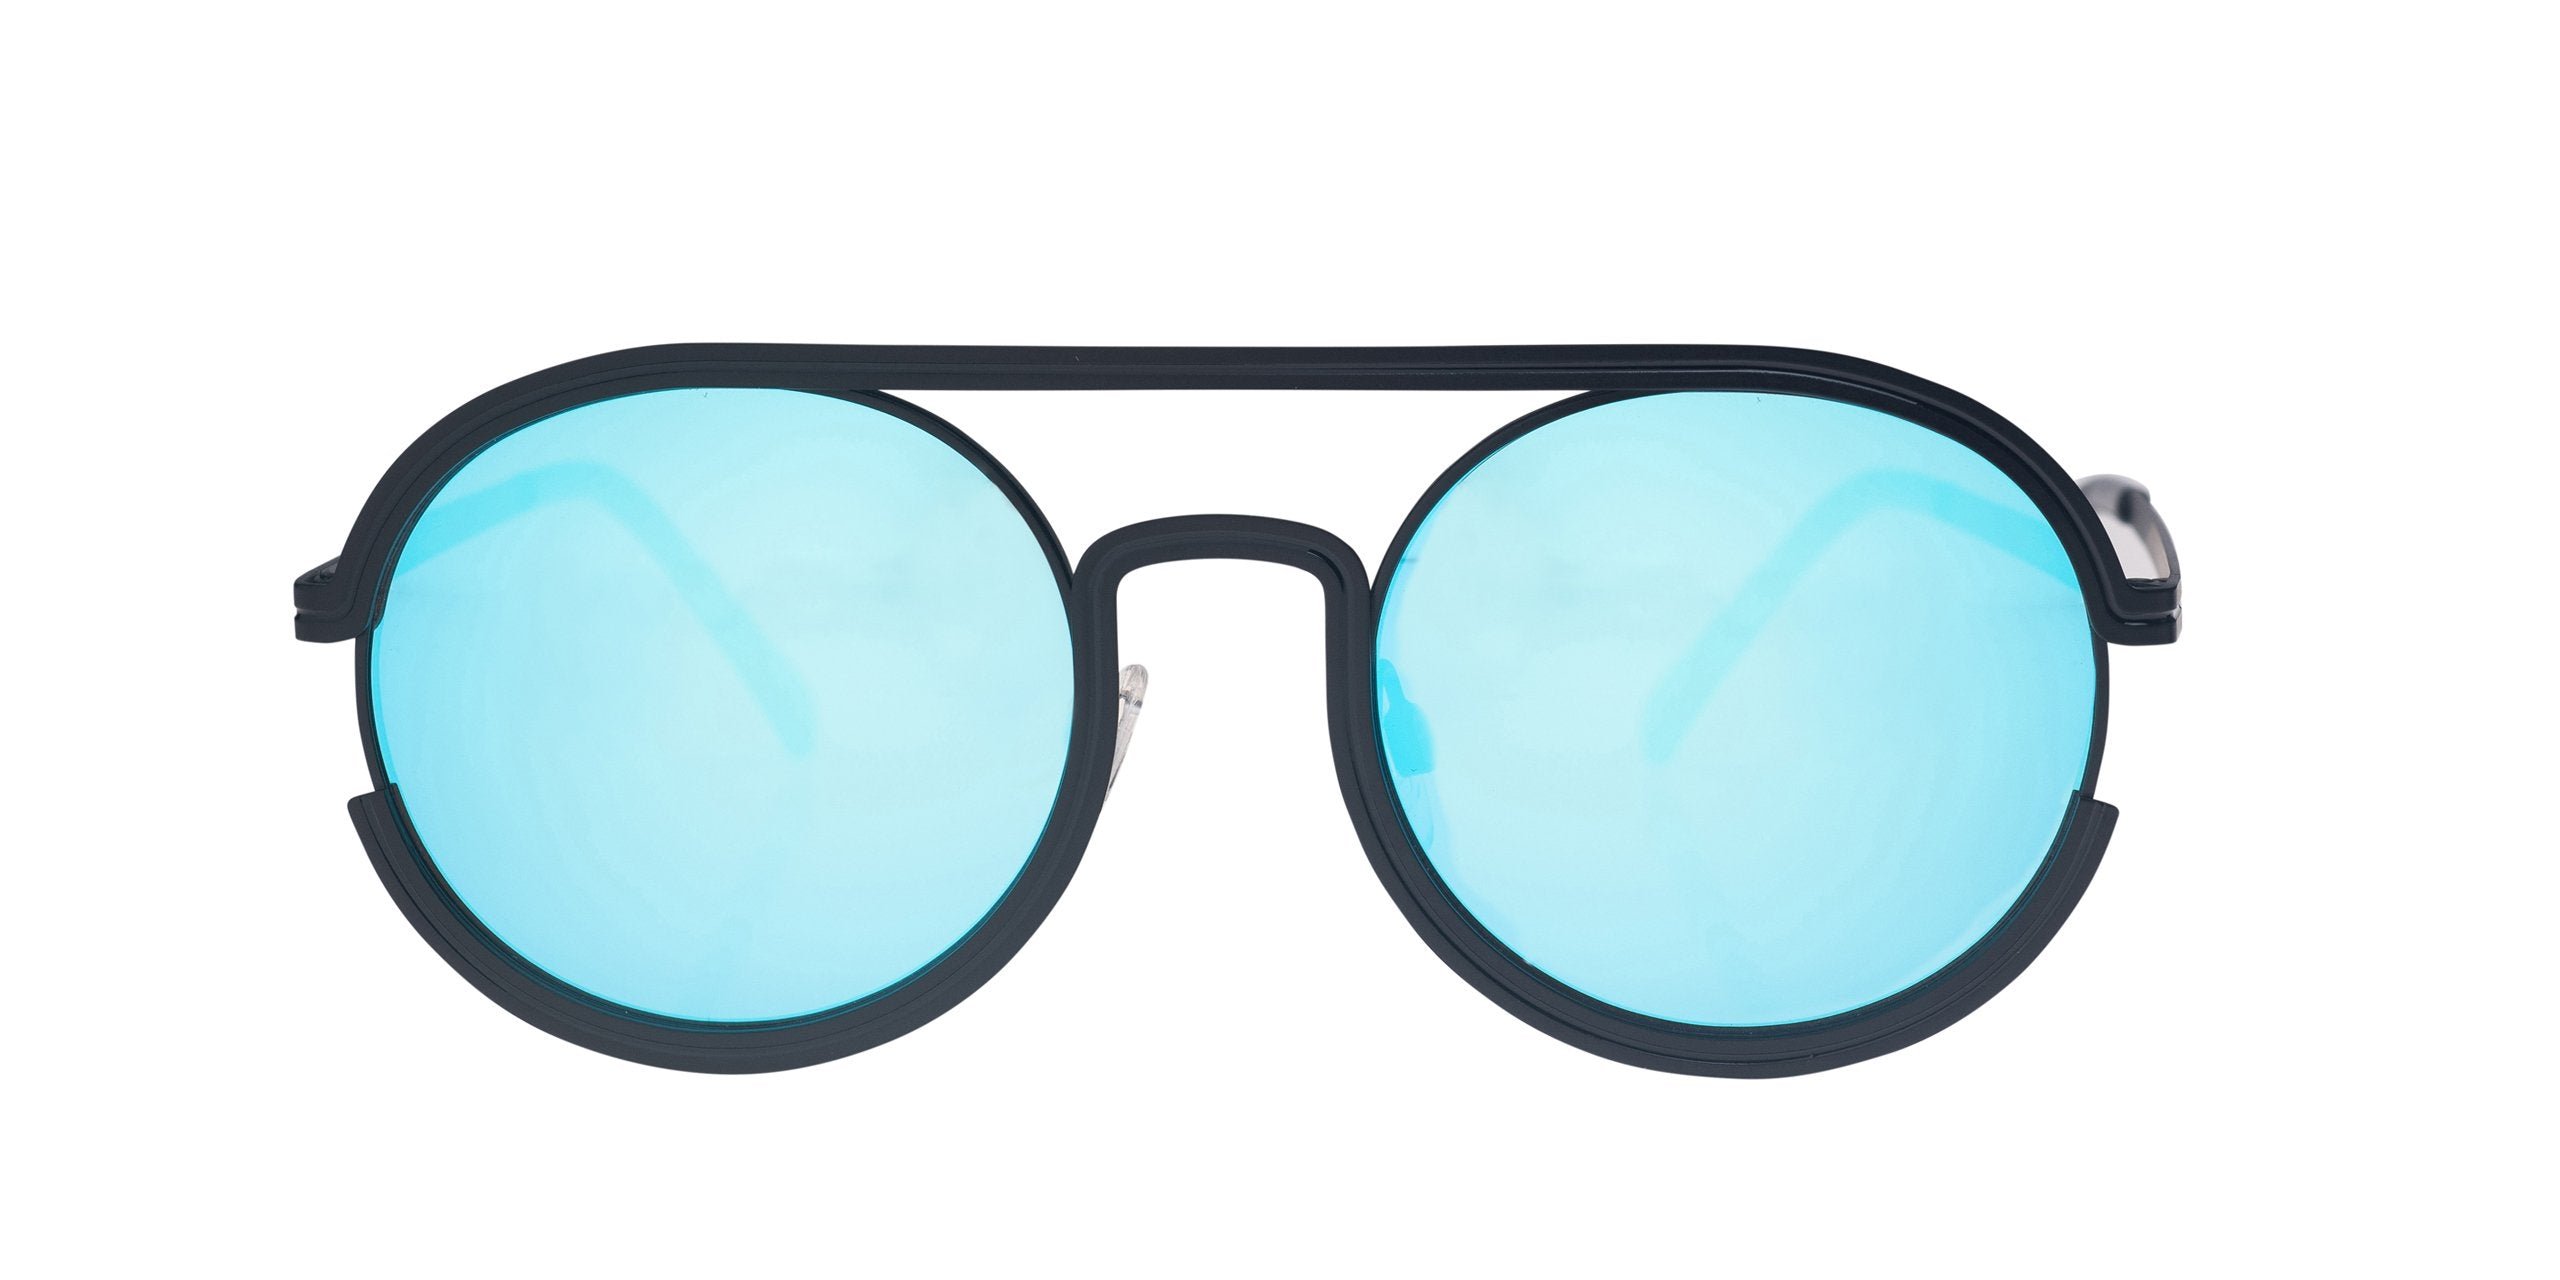 FRAME Matt Black LENS Blue Mirror